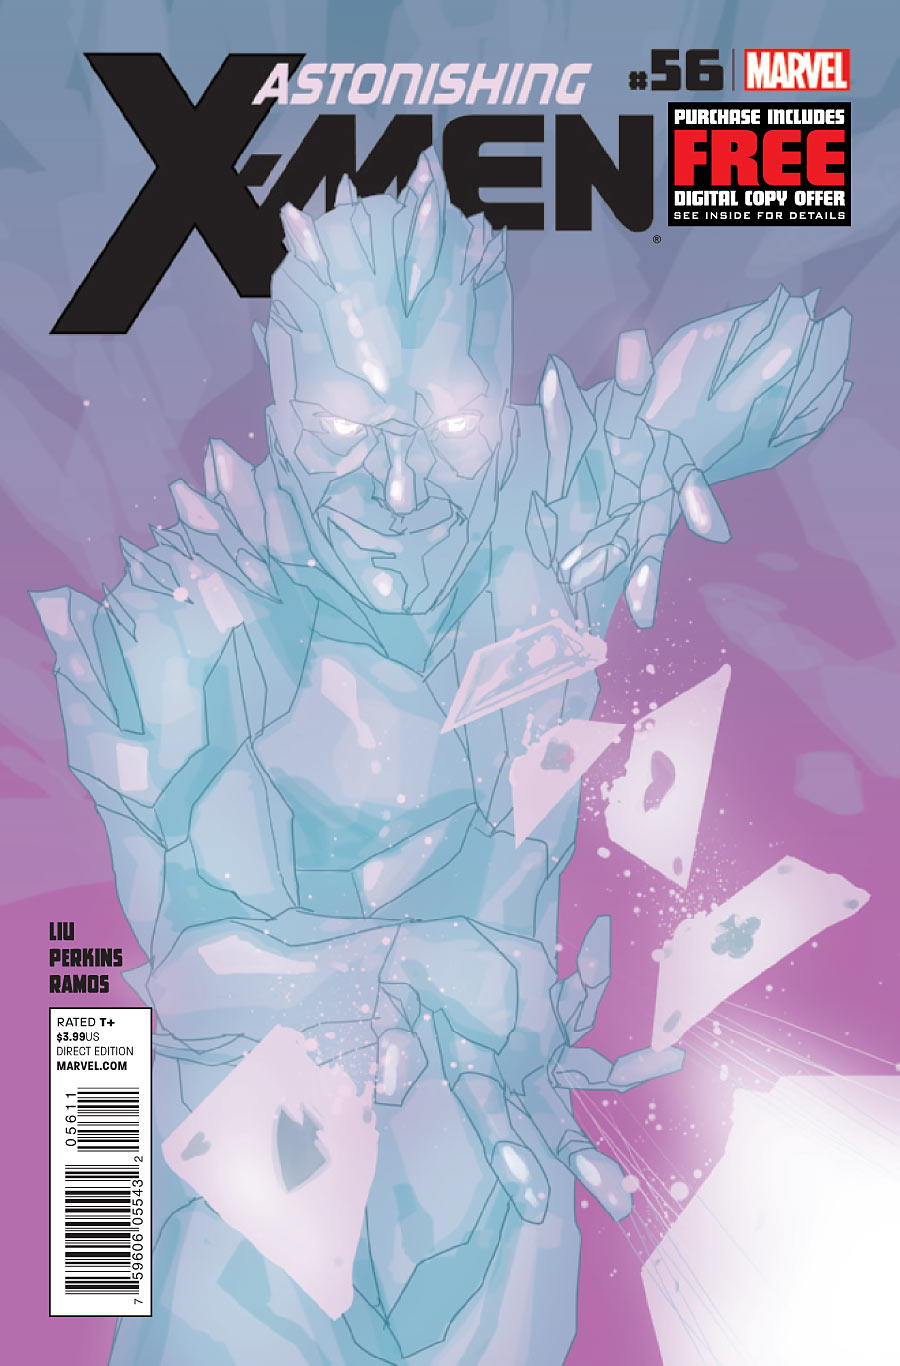 Astonishing X-Men issue 56.00